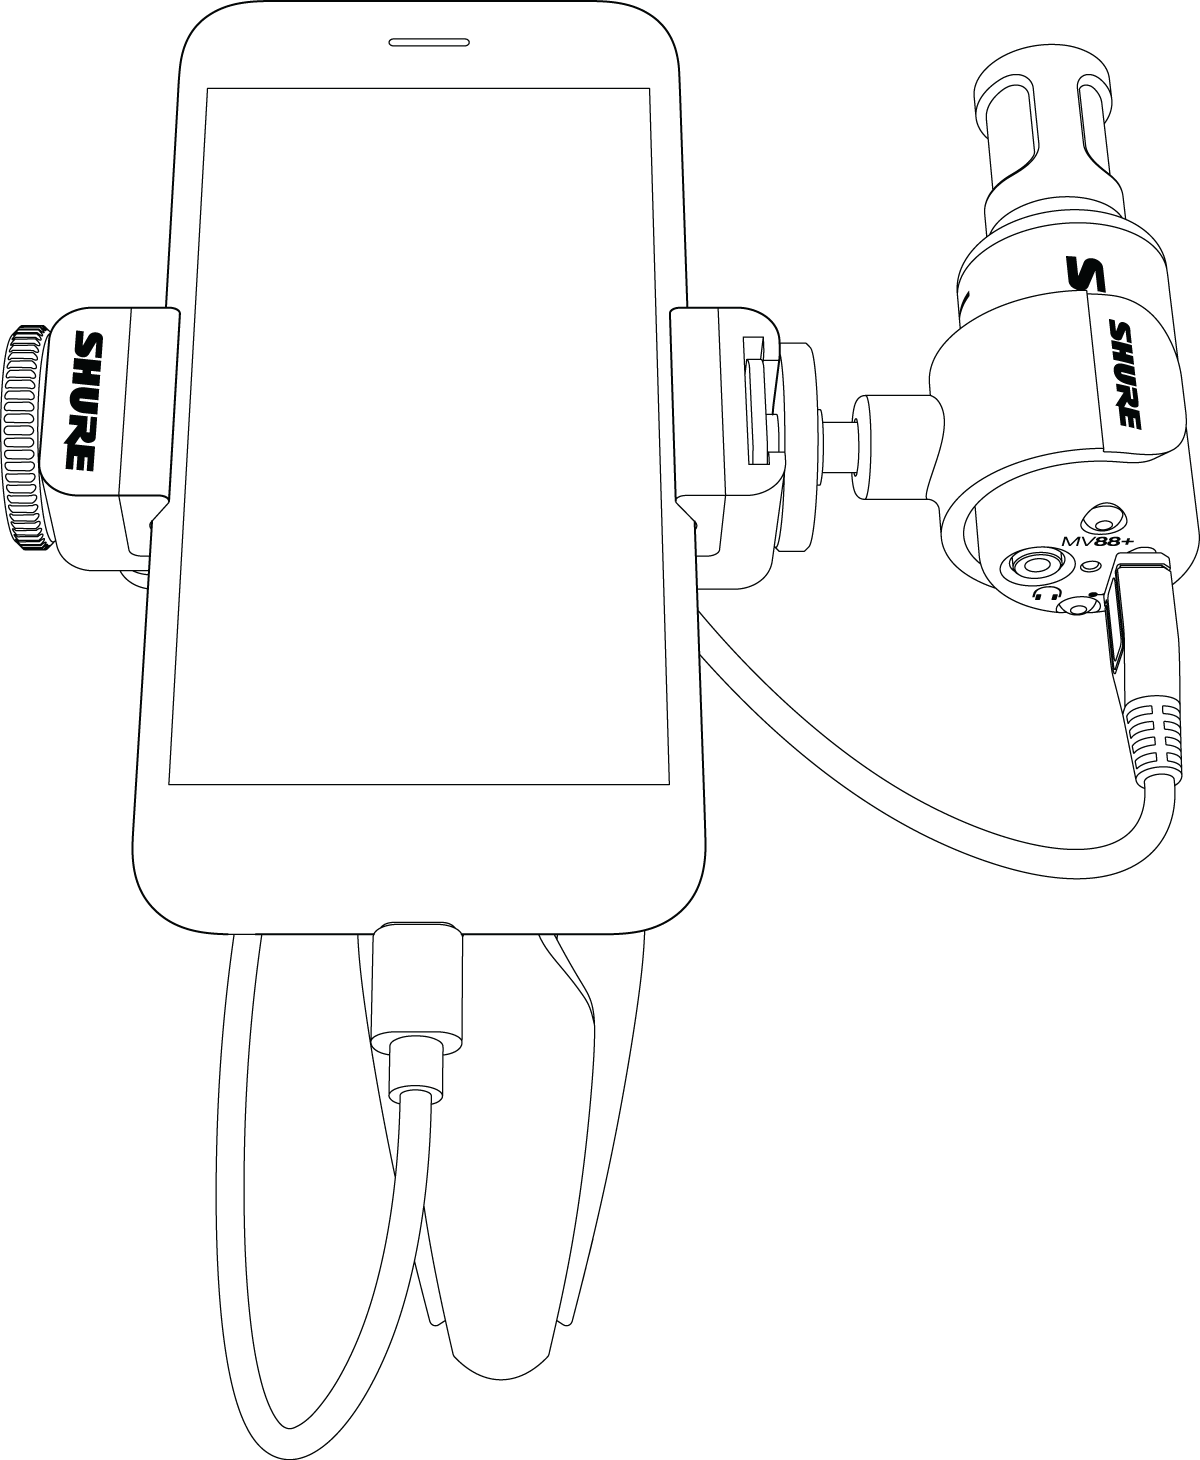 Illustration of MOTIV mic and phone in portrait shooting mode